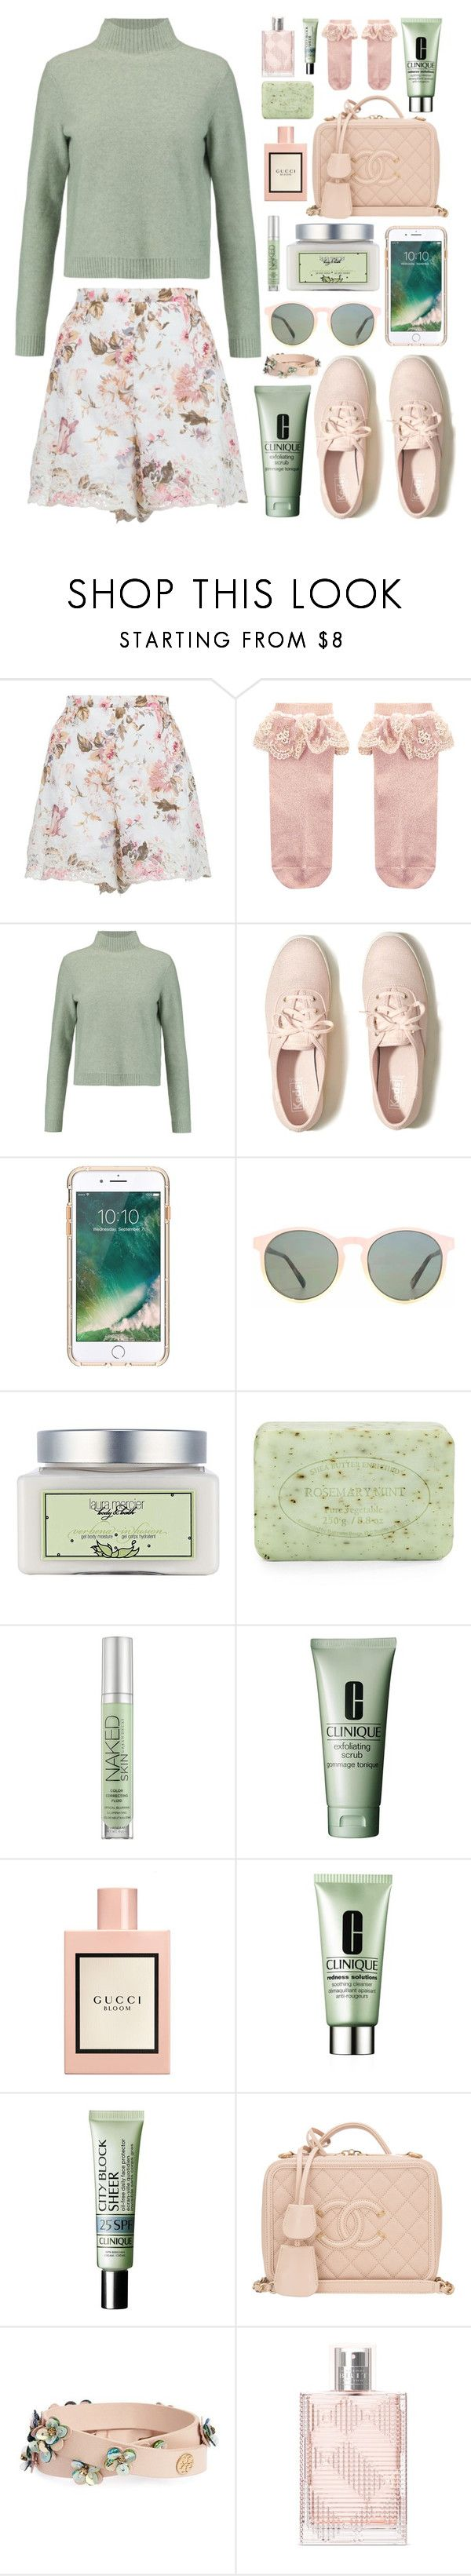 """""""Mint and Rose"""" by lillyluvs ❤ liked on Polyvore featuring Zimmermann, Monsoon, Tory Burch, Hollister Co., Griffin, HOOK LDN, Laura Mercier, Pré de Provence, Urban Decay and Clinique"""